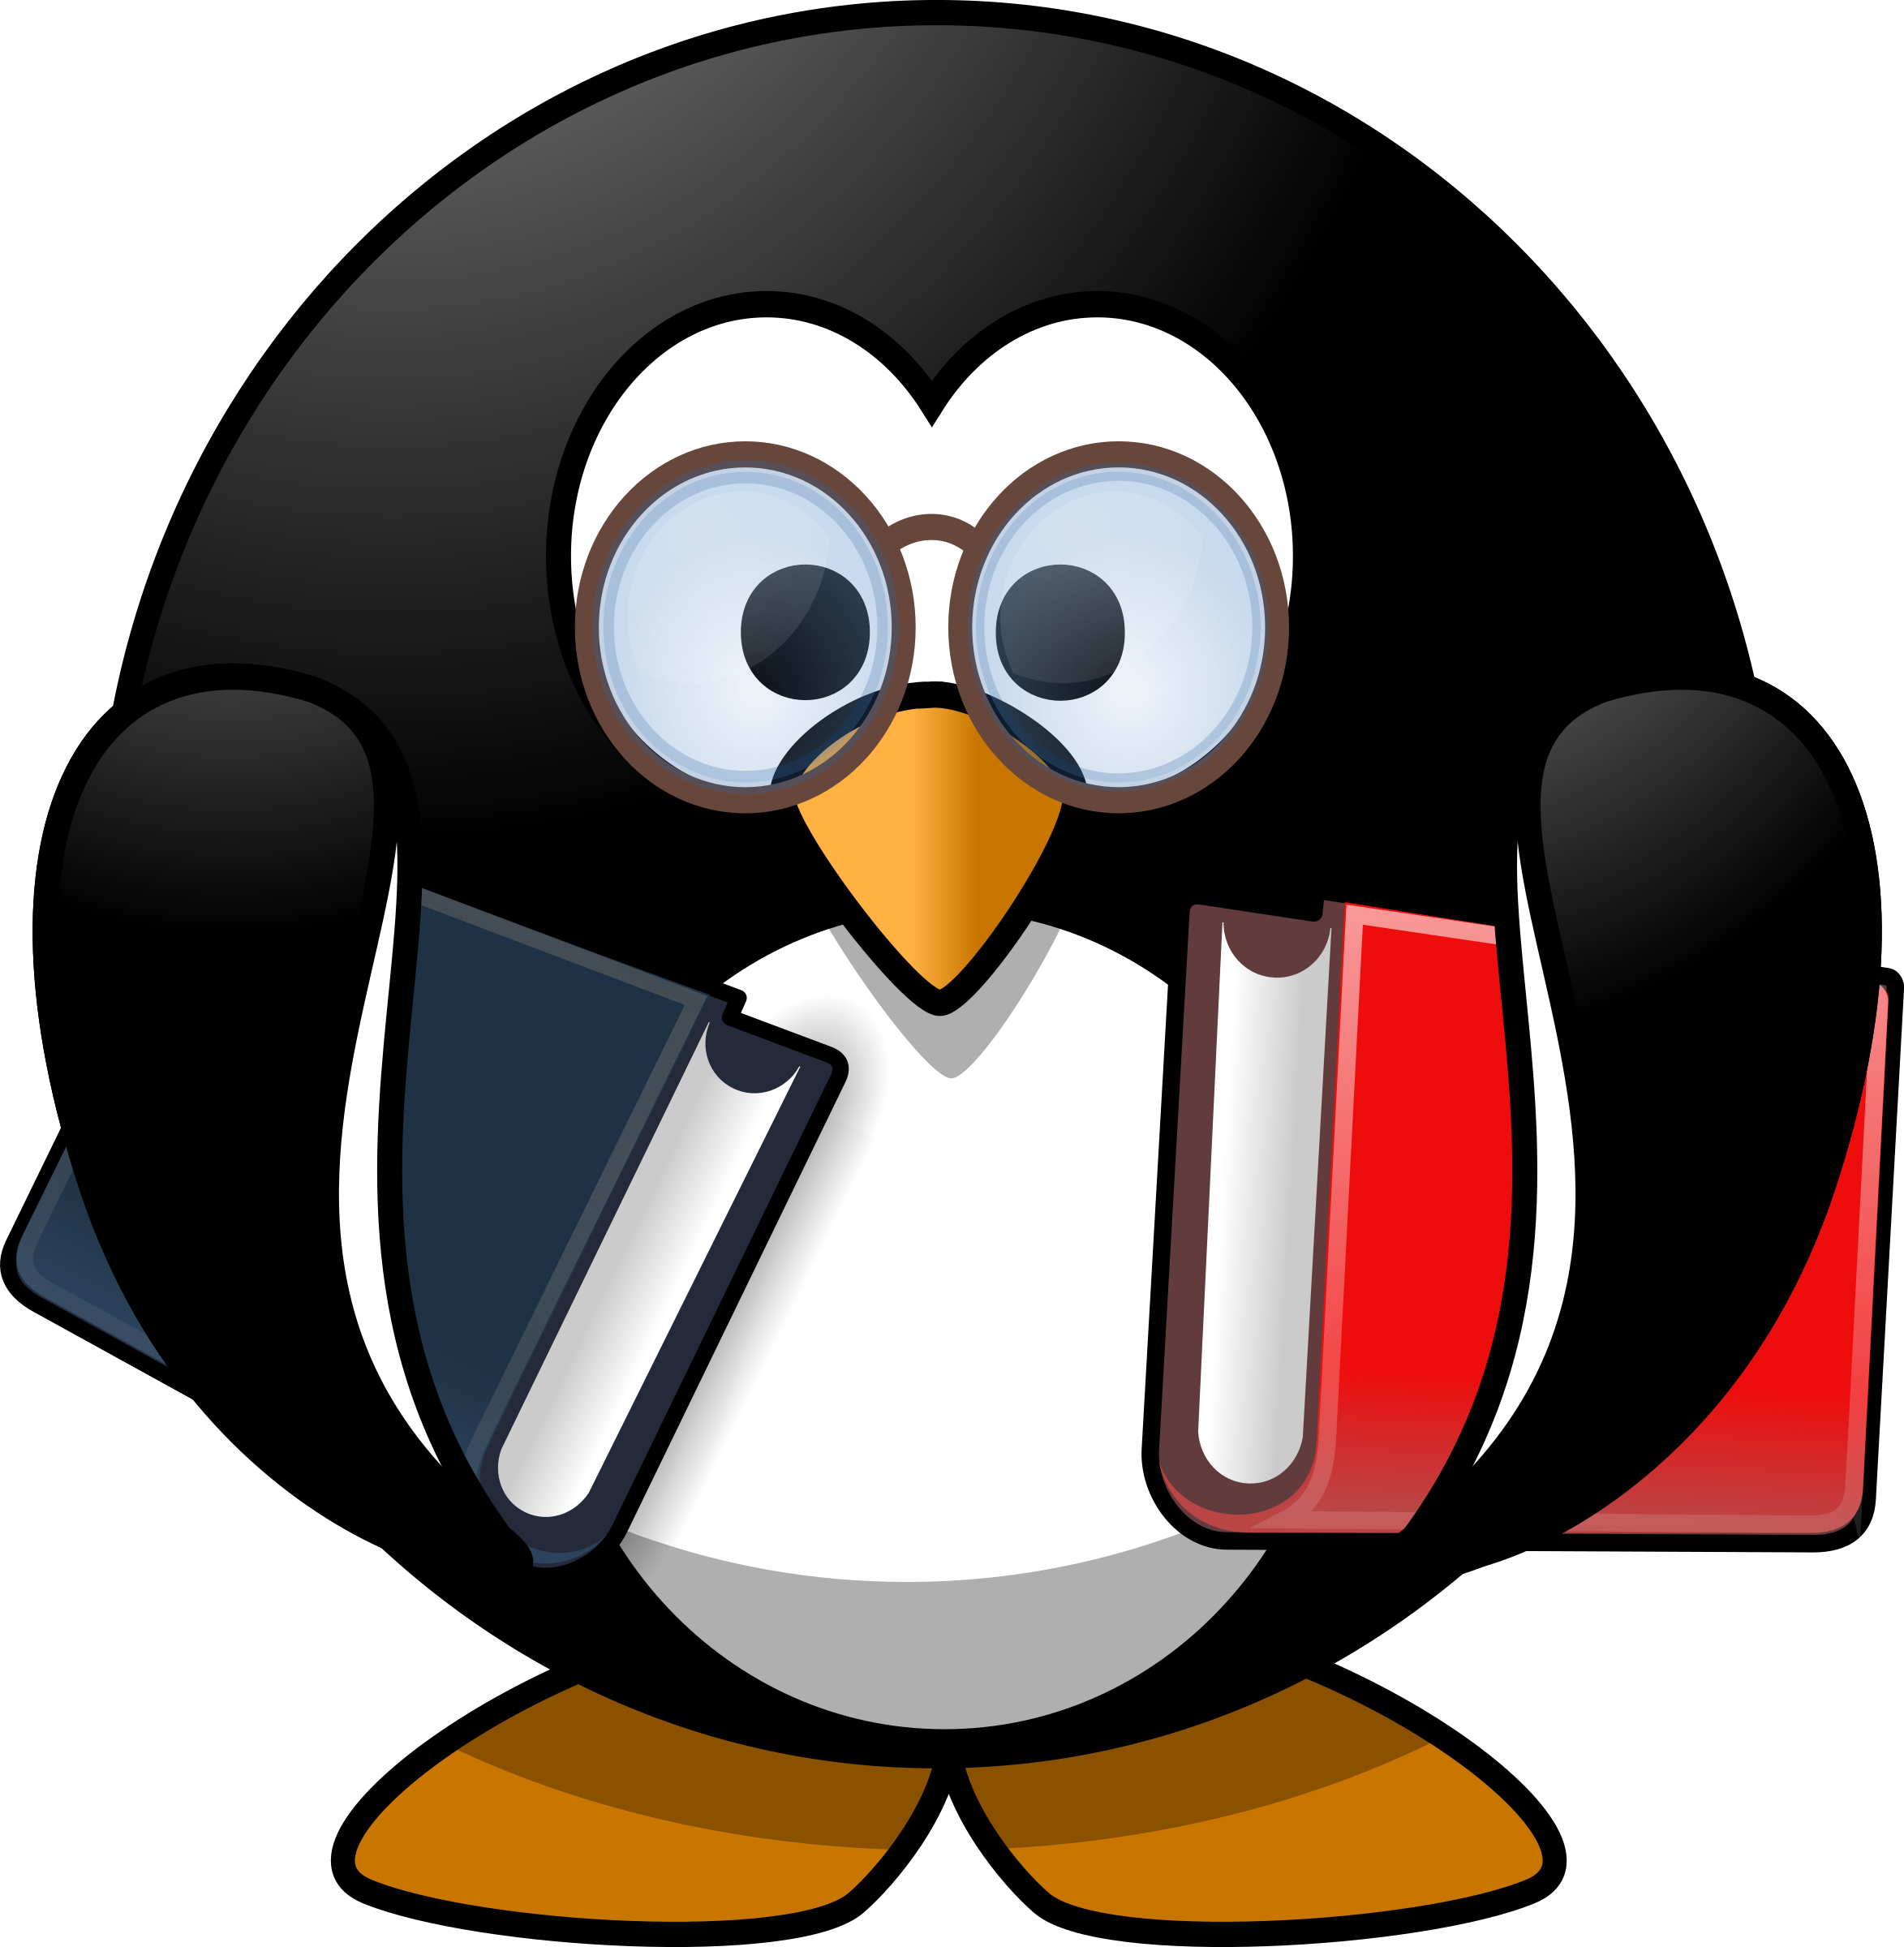 Tux the Penguin reading books